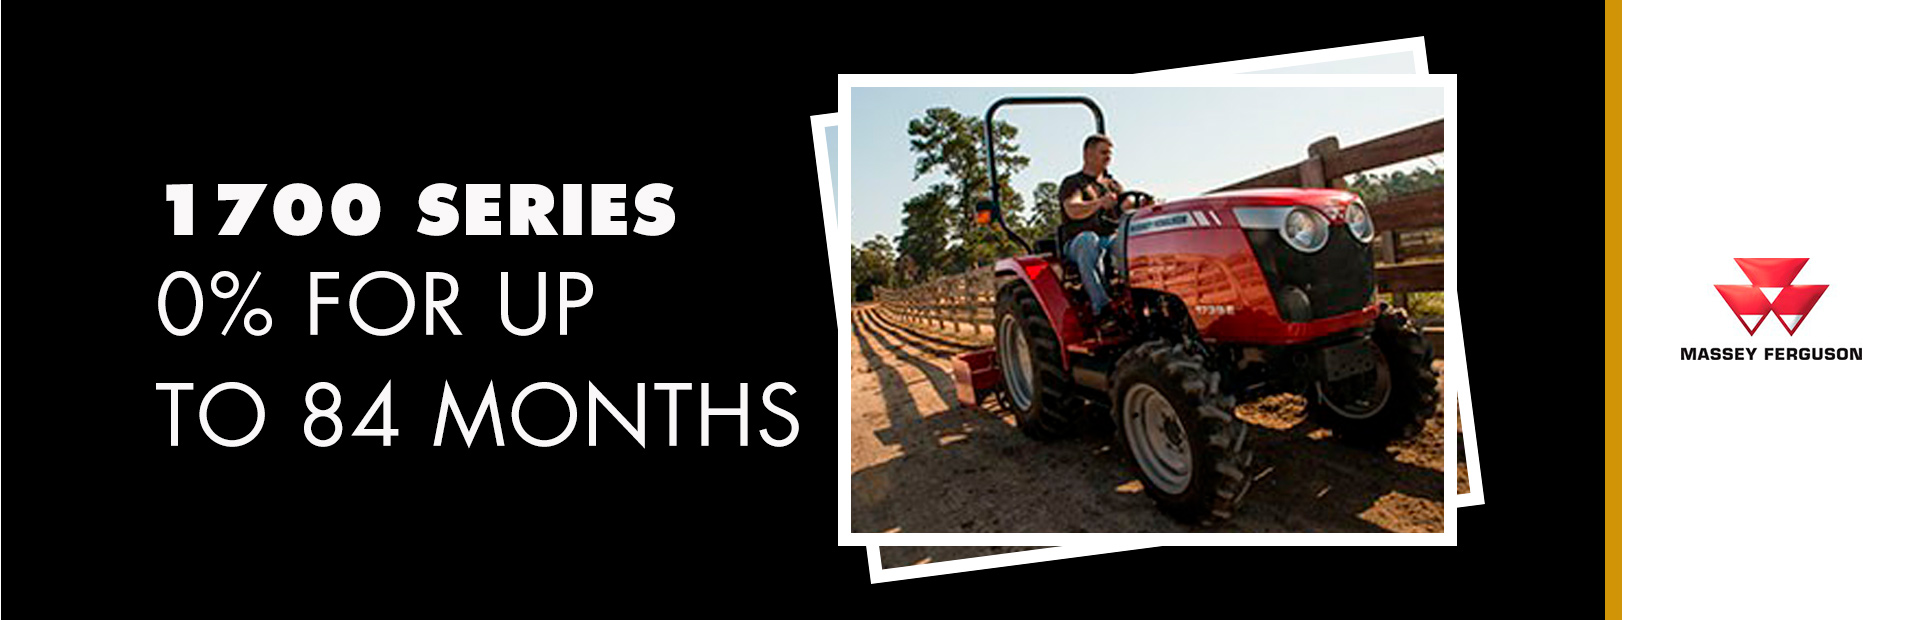 Massey Ferguson: 1700 Series Economy - 0% for up to 84 Months